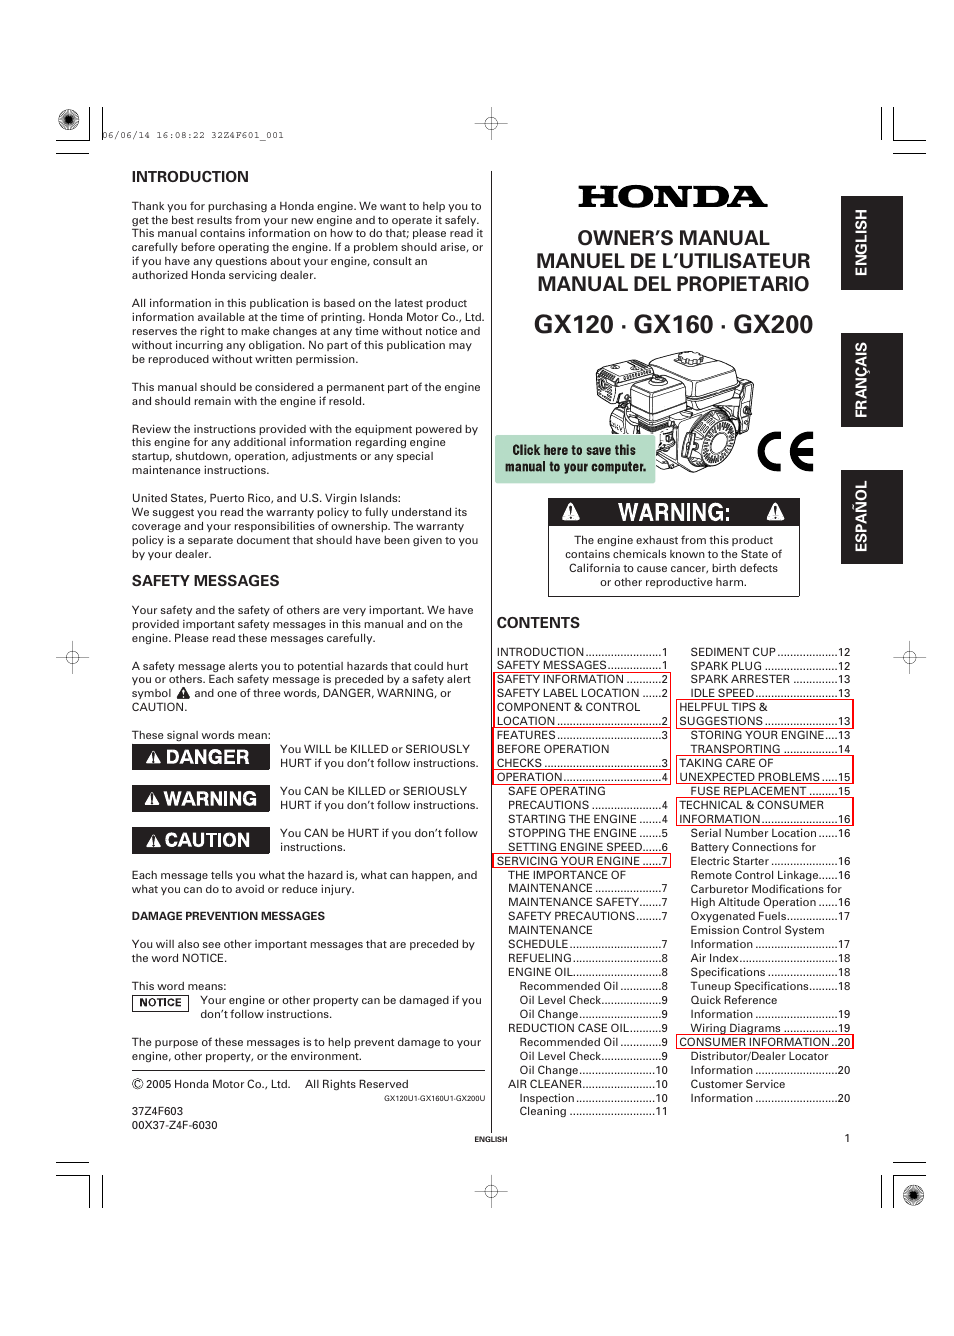 HONDA GX200 User Manual | 60 pages